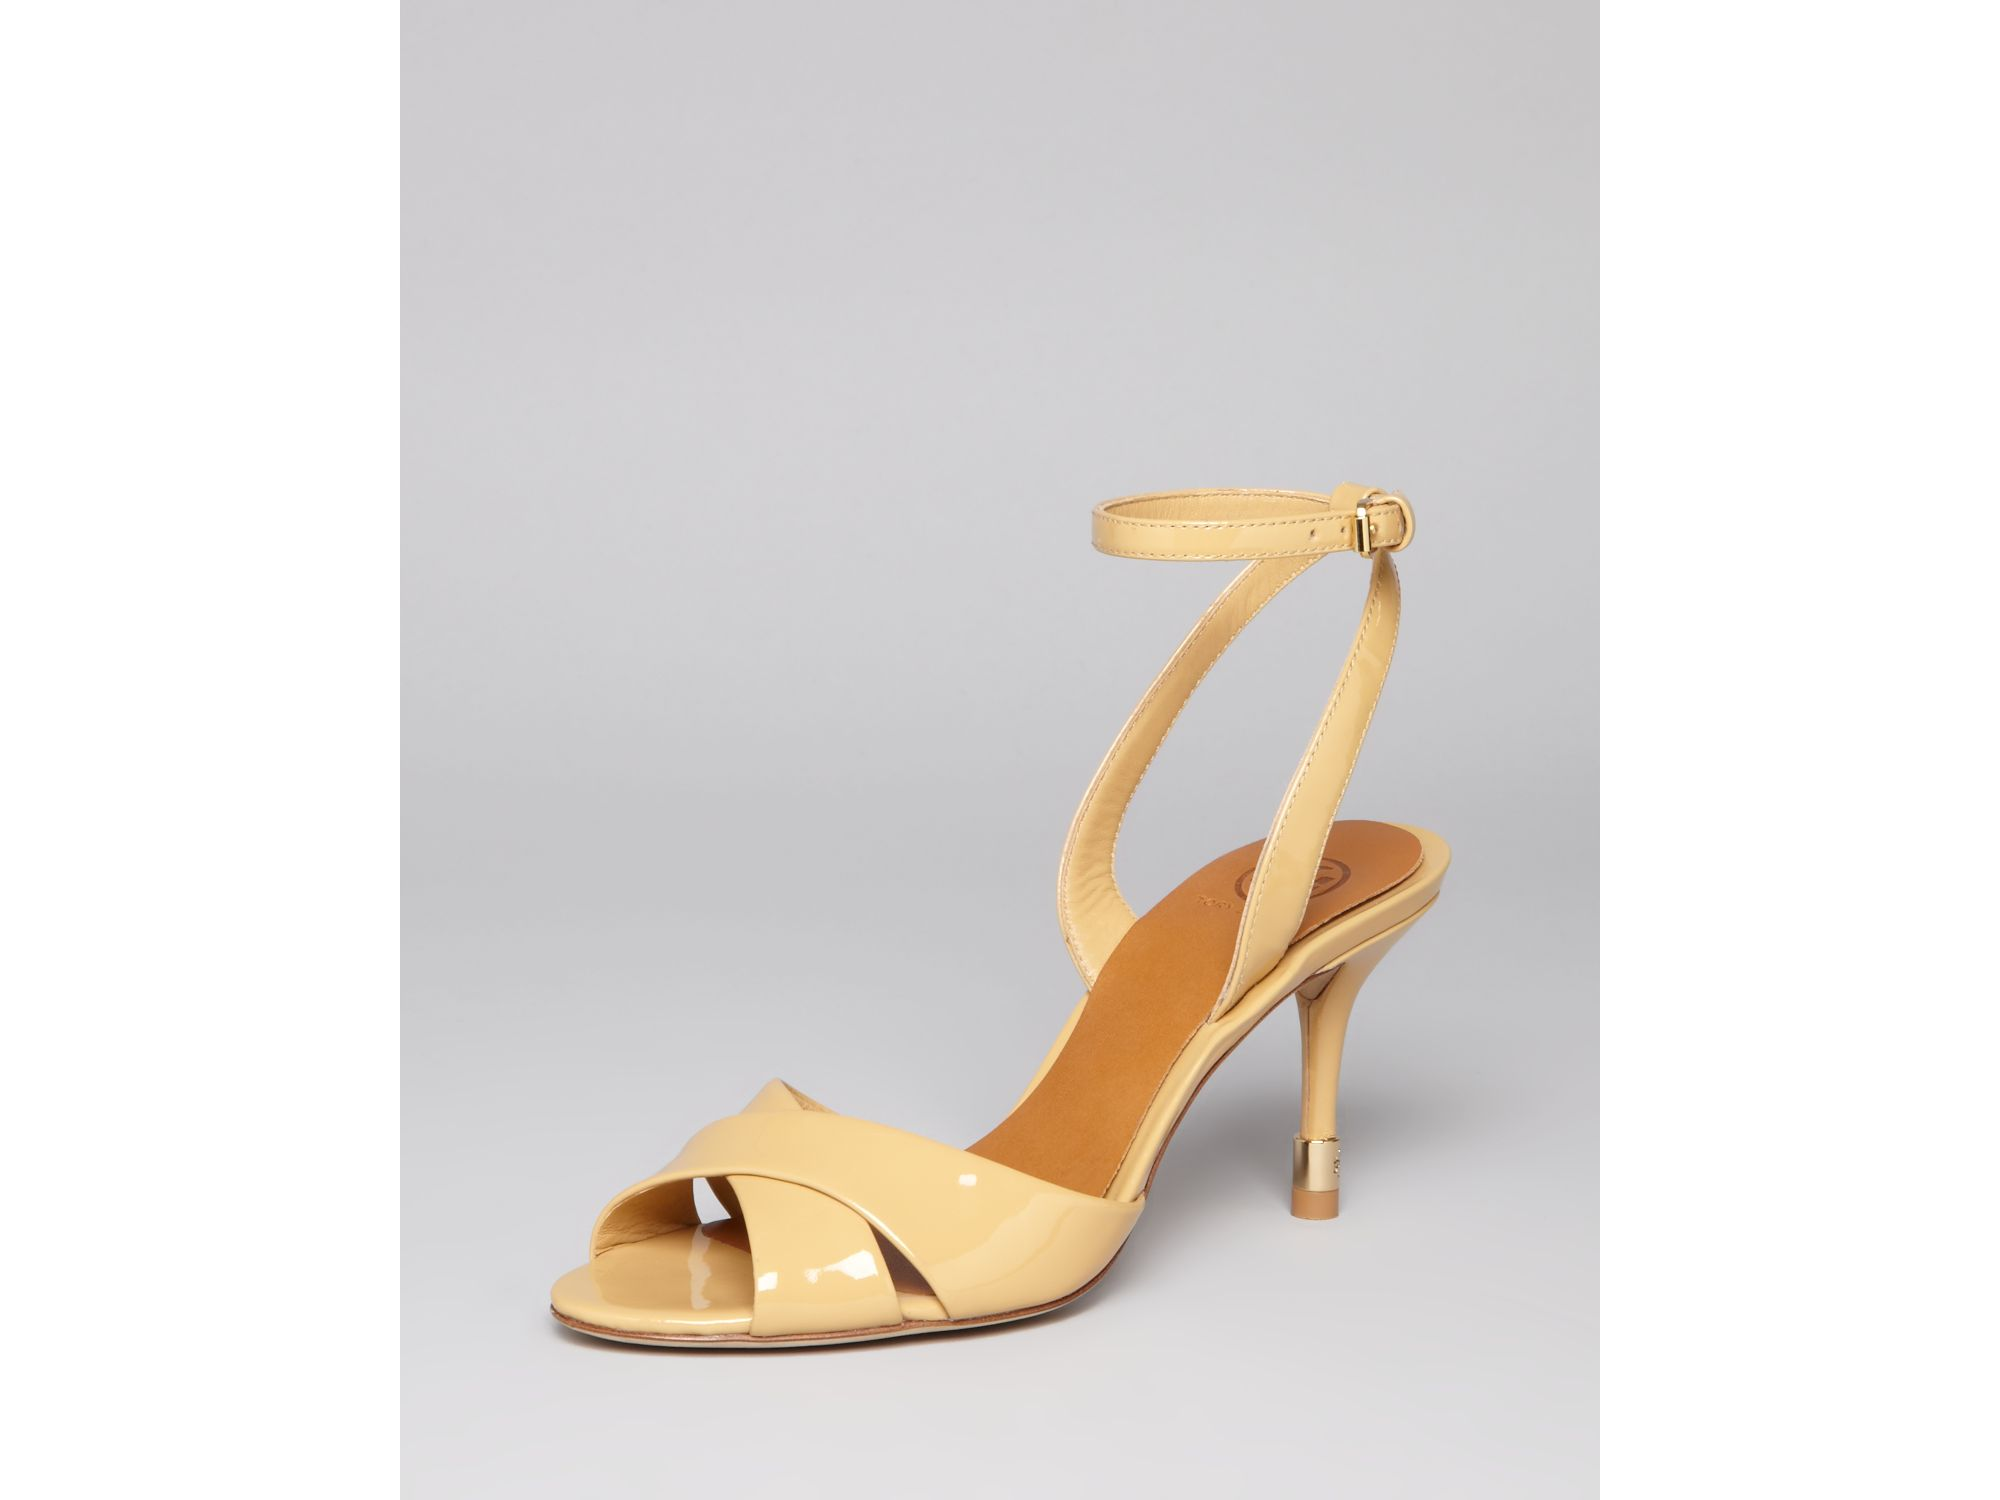 ebadb290680a Lyst - Tory Burch Sandals Tania High Heel in Natural